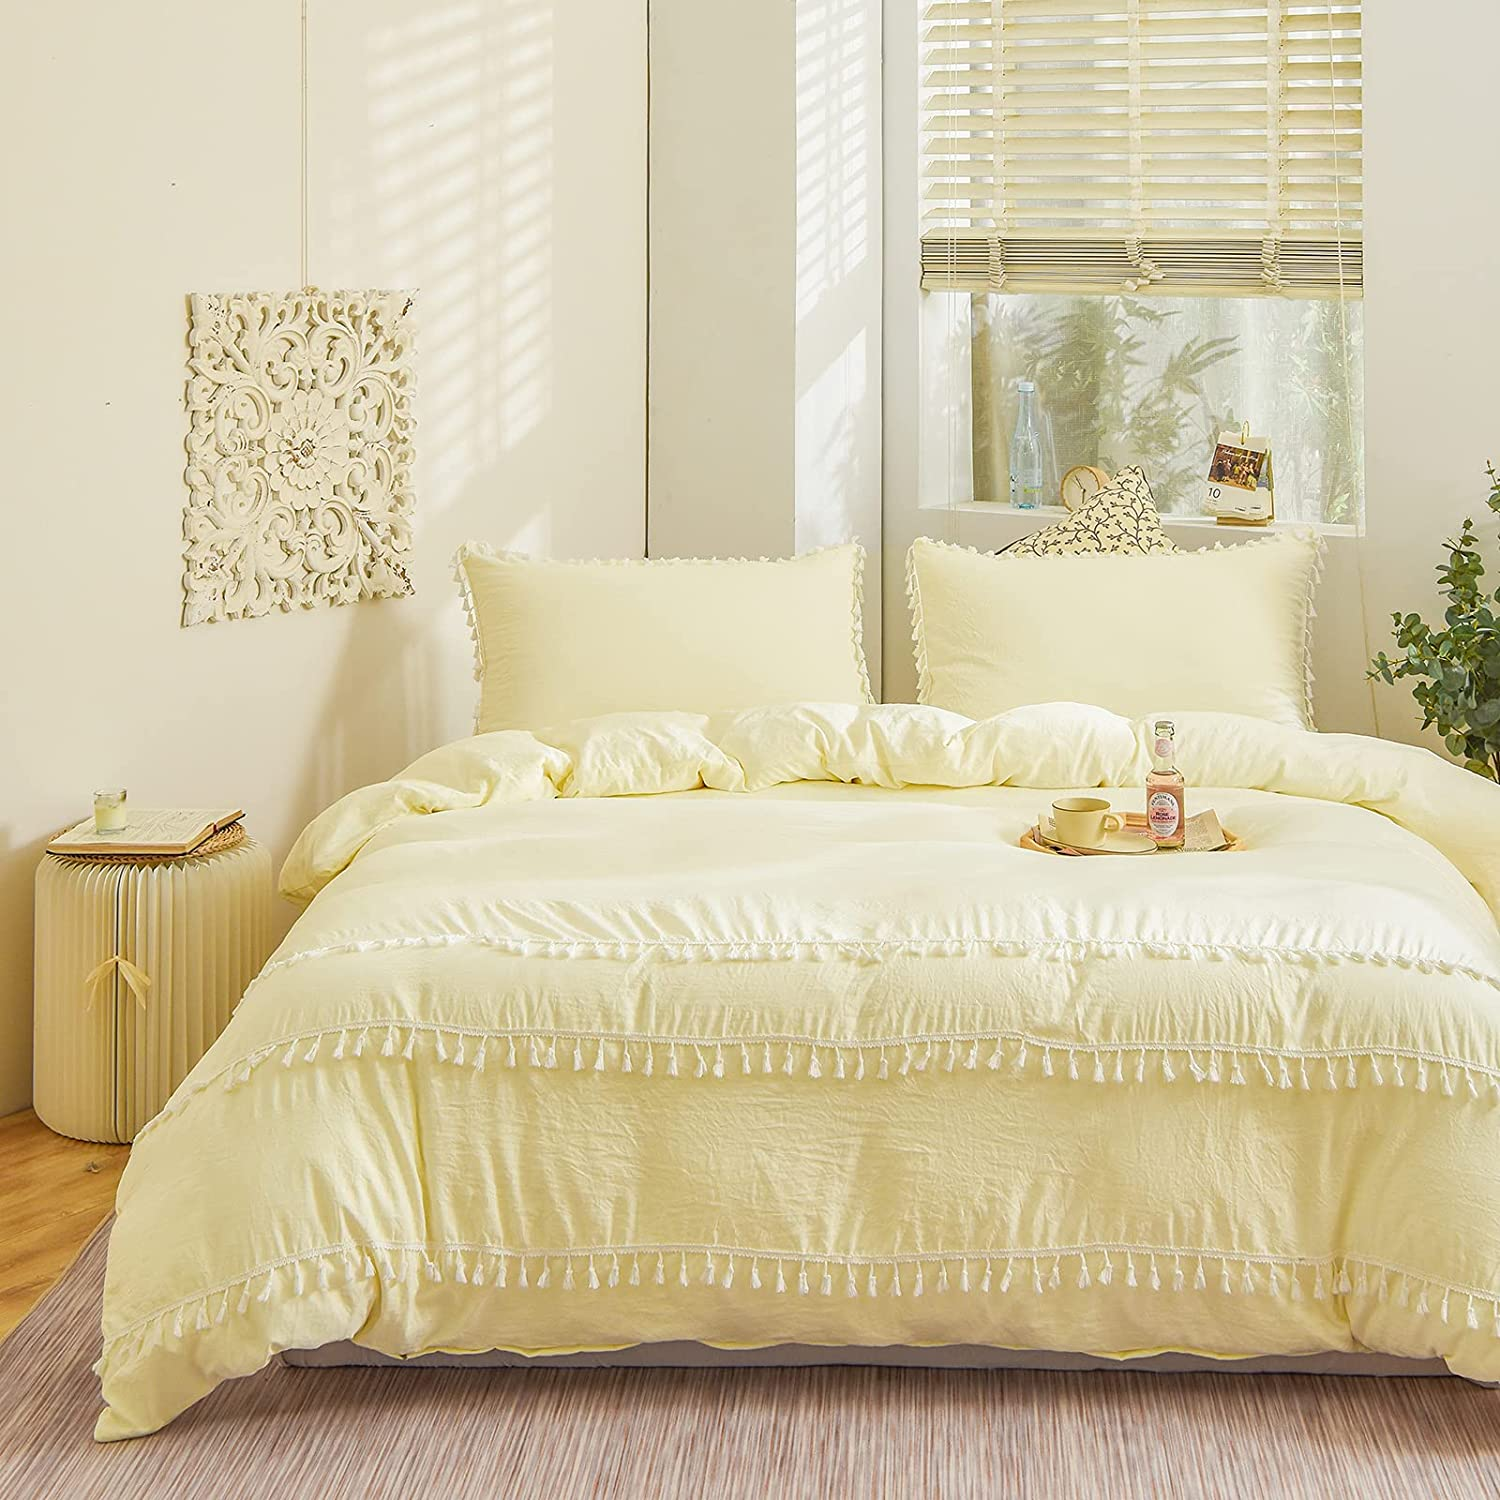 Bedbay Solid Tassel Bedding Set Cream-Colored Tufted Tassel Duvet Cover Set Solid Beige Light Yellow Shabby Chic Bedding Twin 1 Duvet Cover 1 Pillowcase(Cream, Twin)